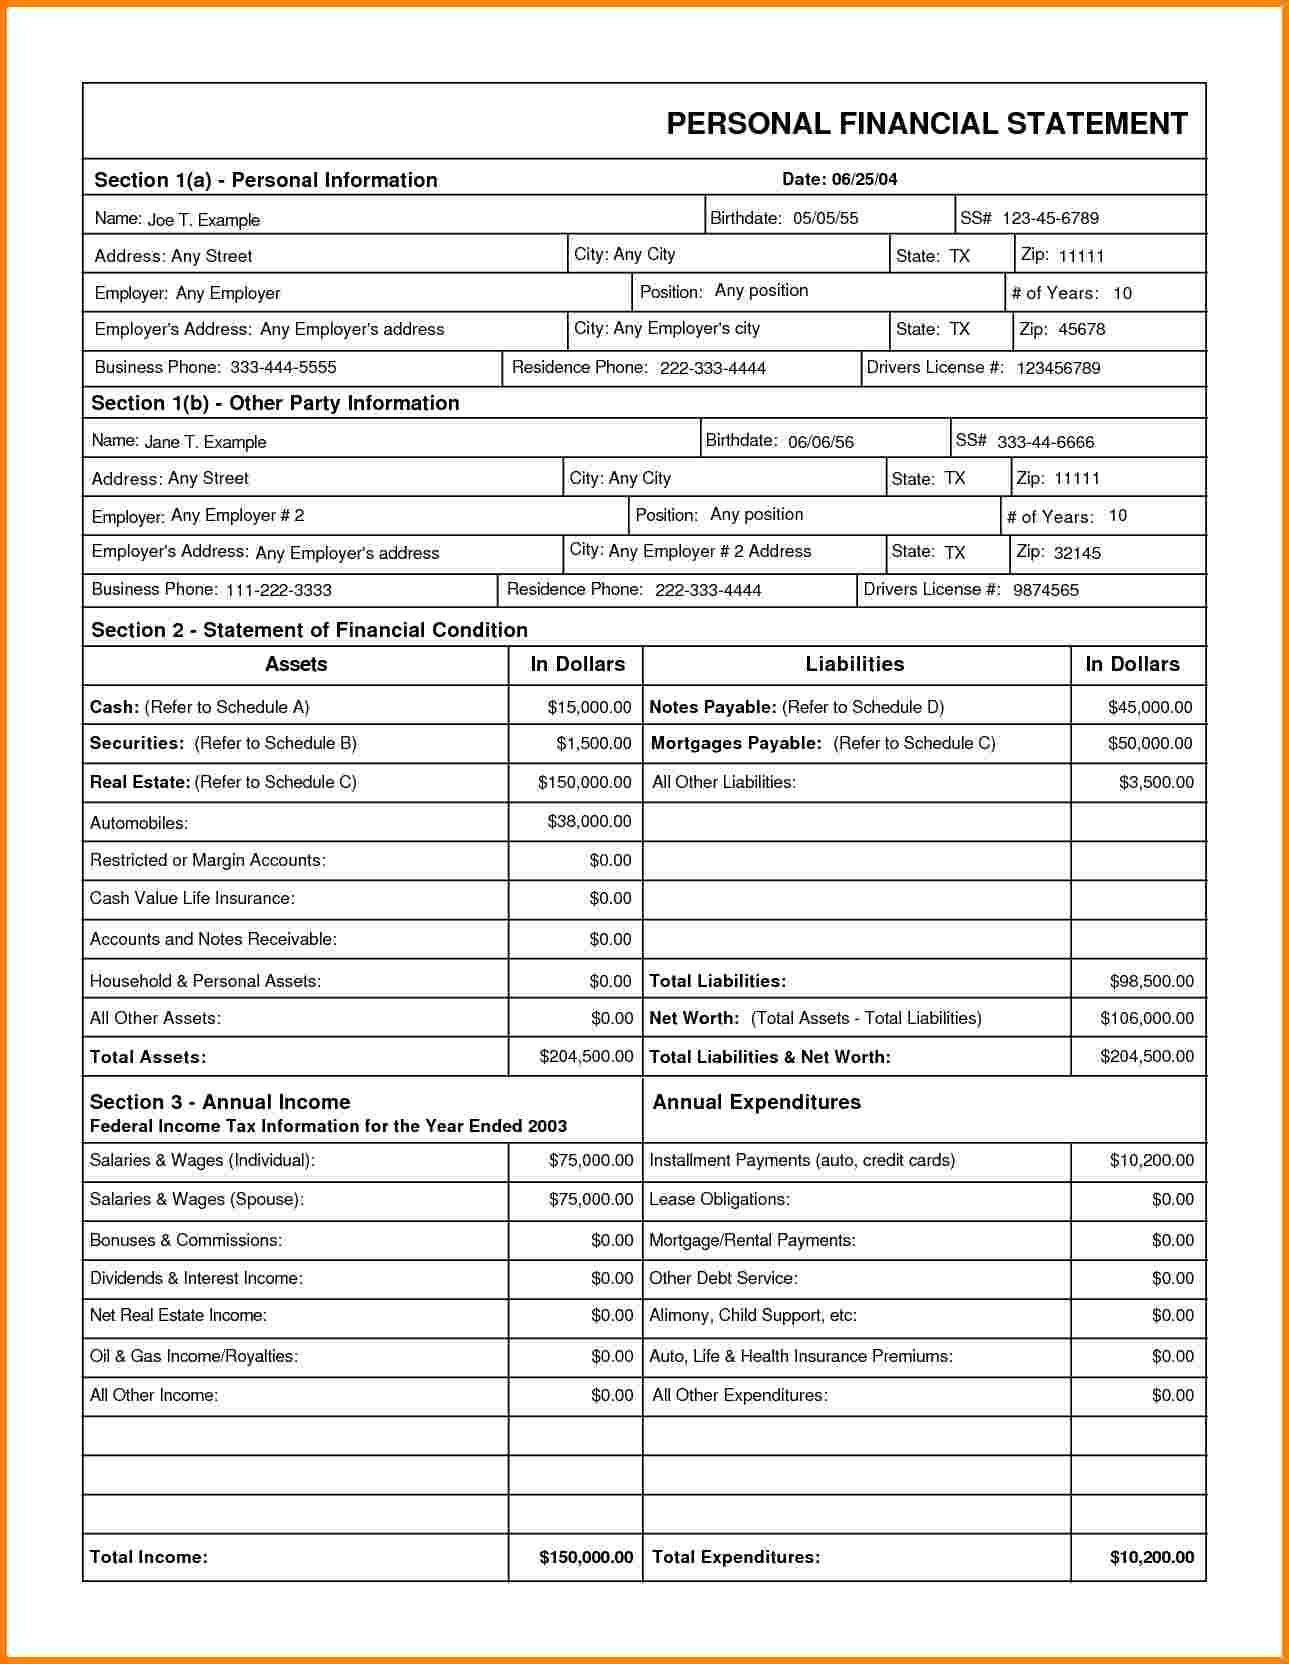 Downloadable Personal Financial Statement Case